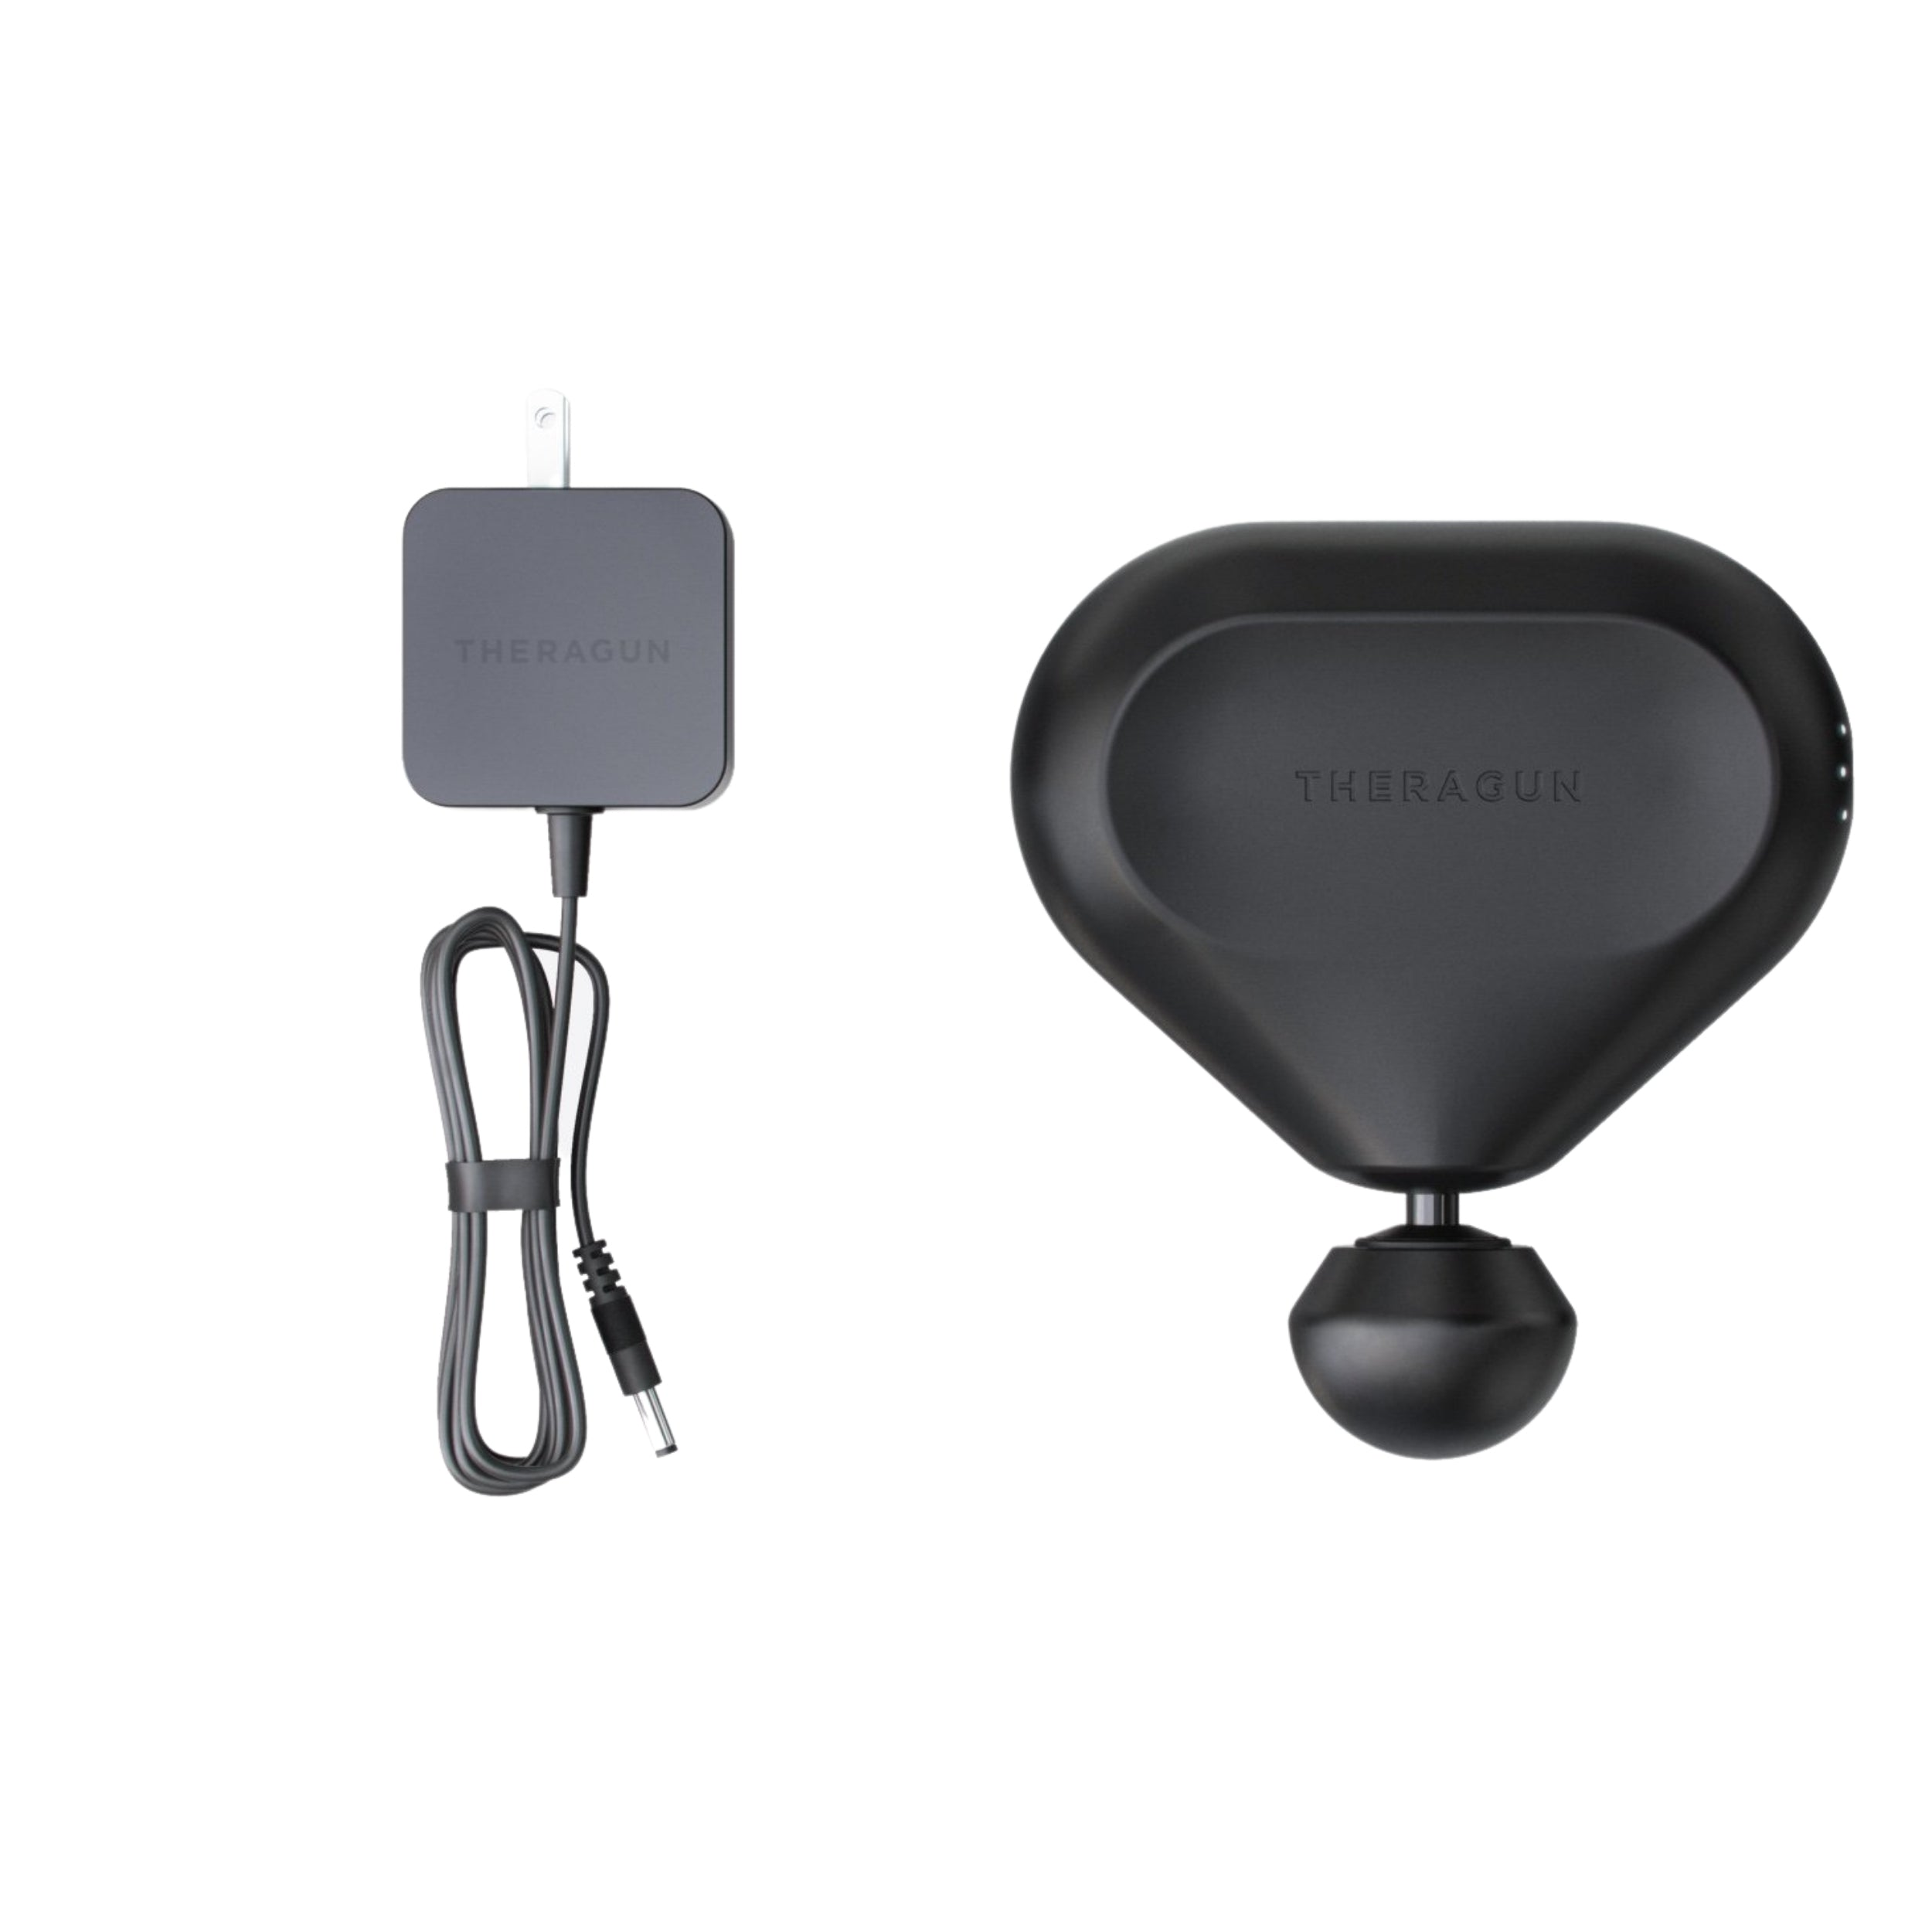 Theragun mini - Compact but powerful, Theragun mini is the most agile massage device that goes wherever you do.